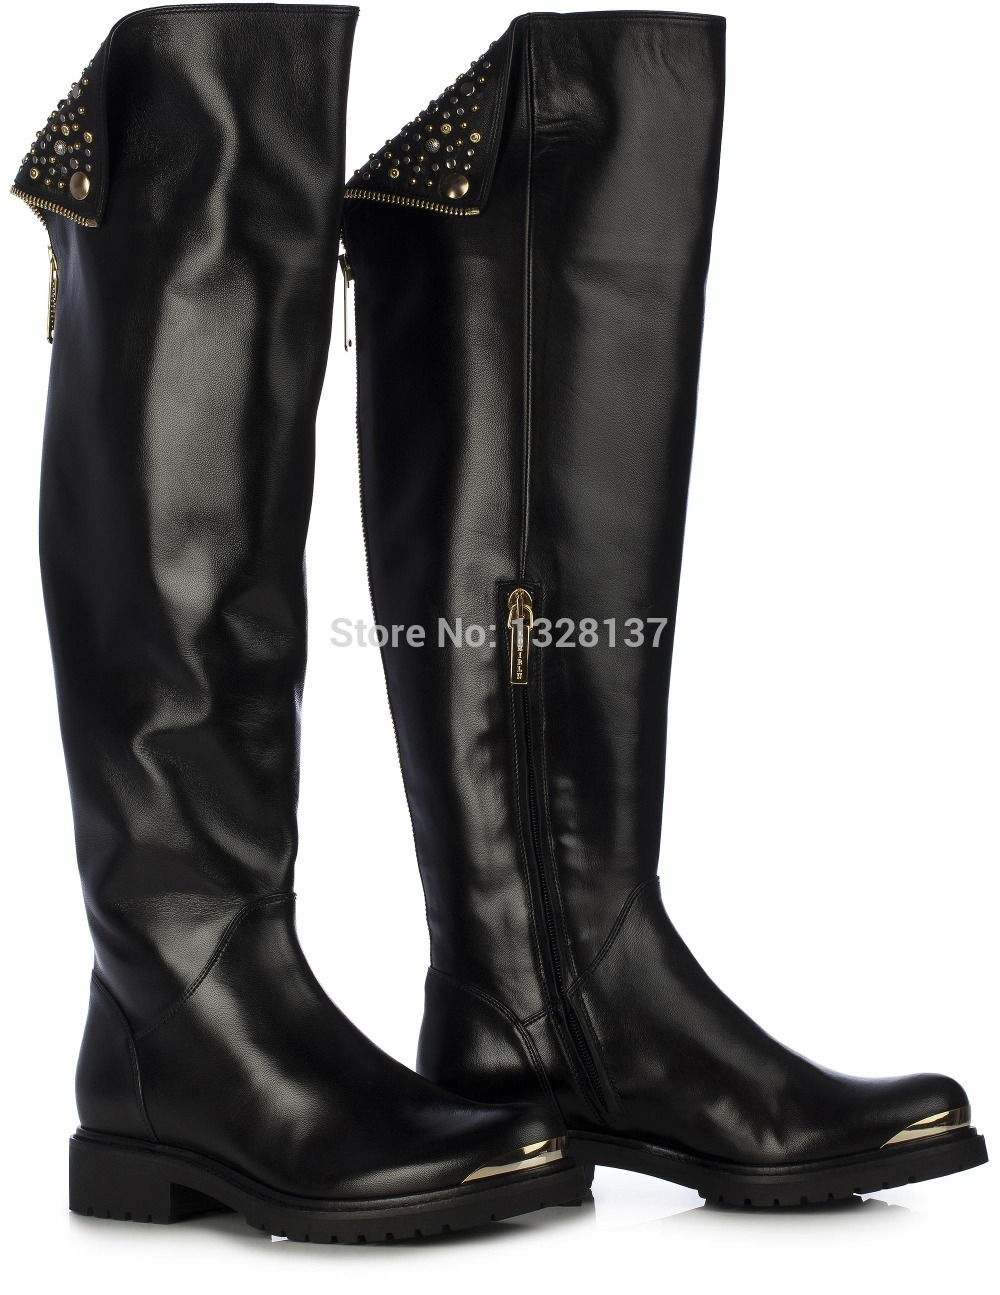 Compare Prices on Knee High Boots Cheap- Online Shopping/Buy Low